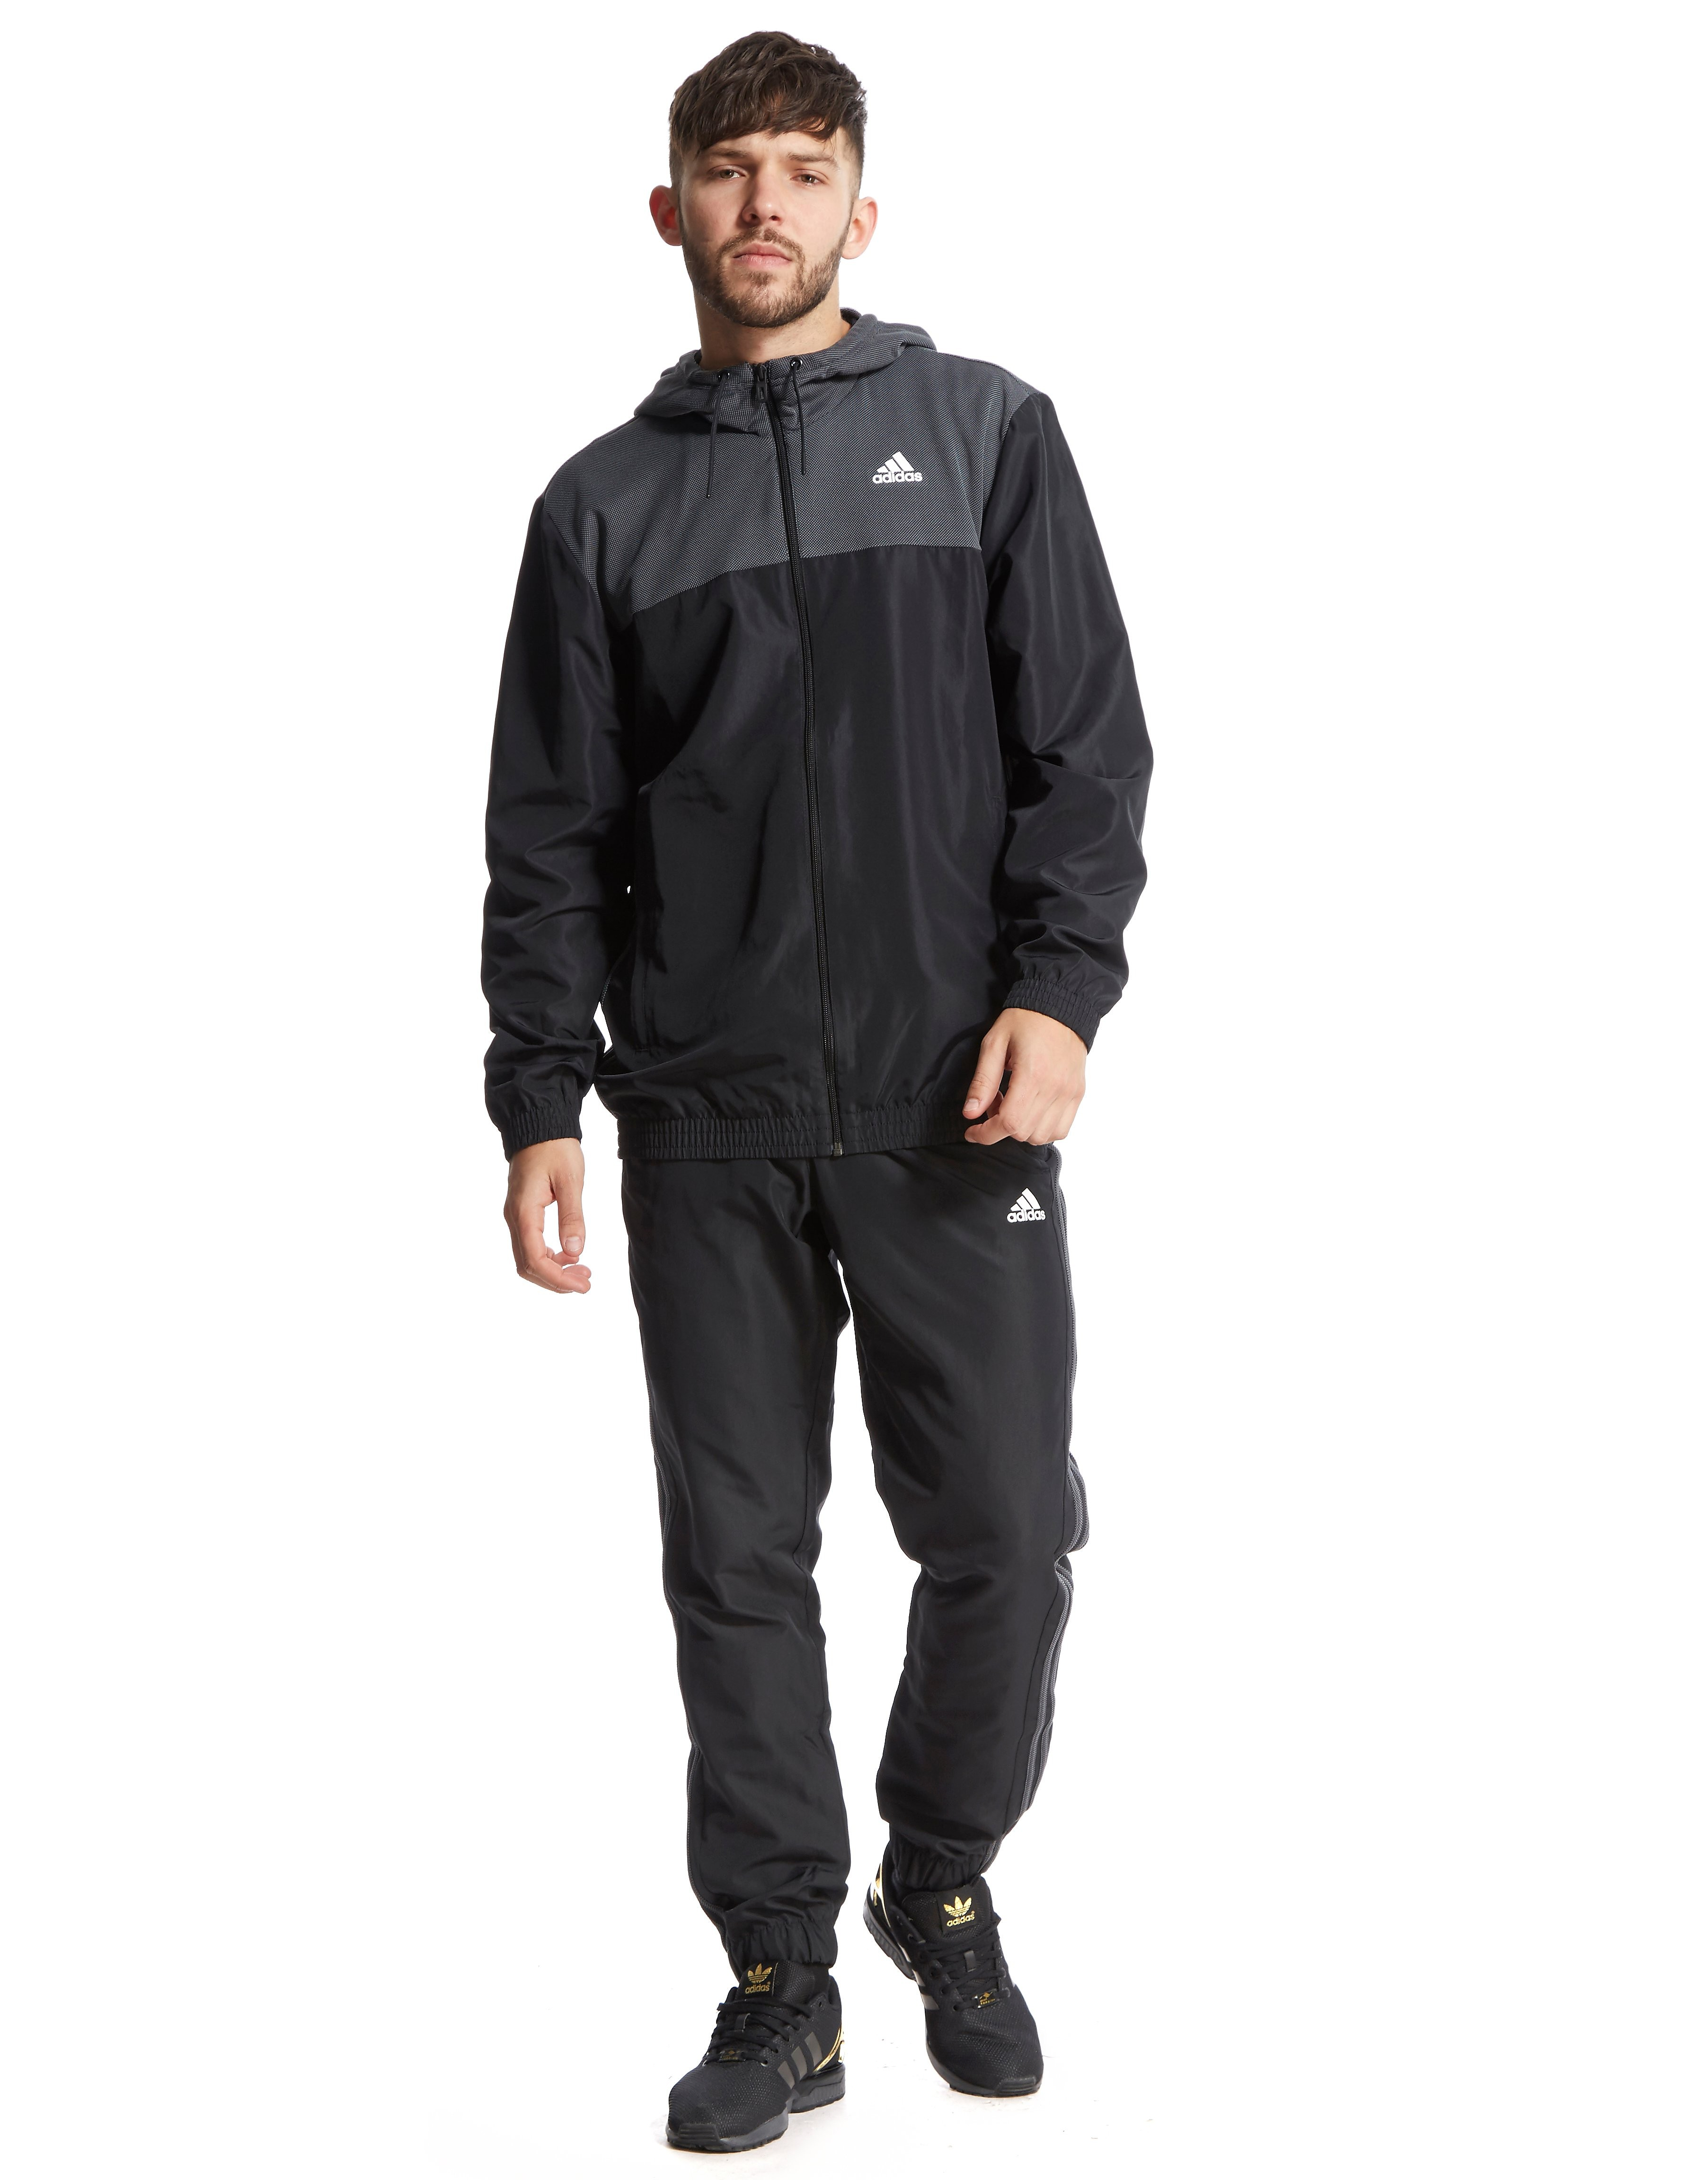 adidas Iconic Hooded Suit